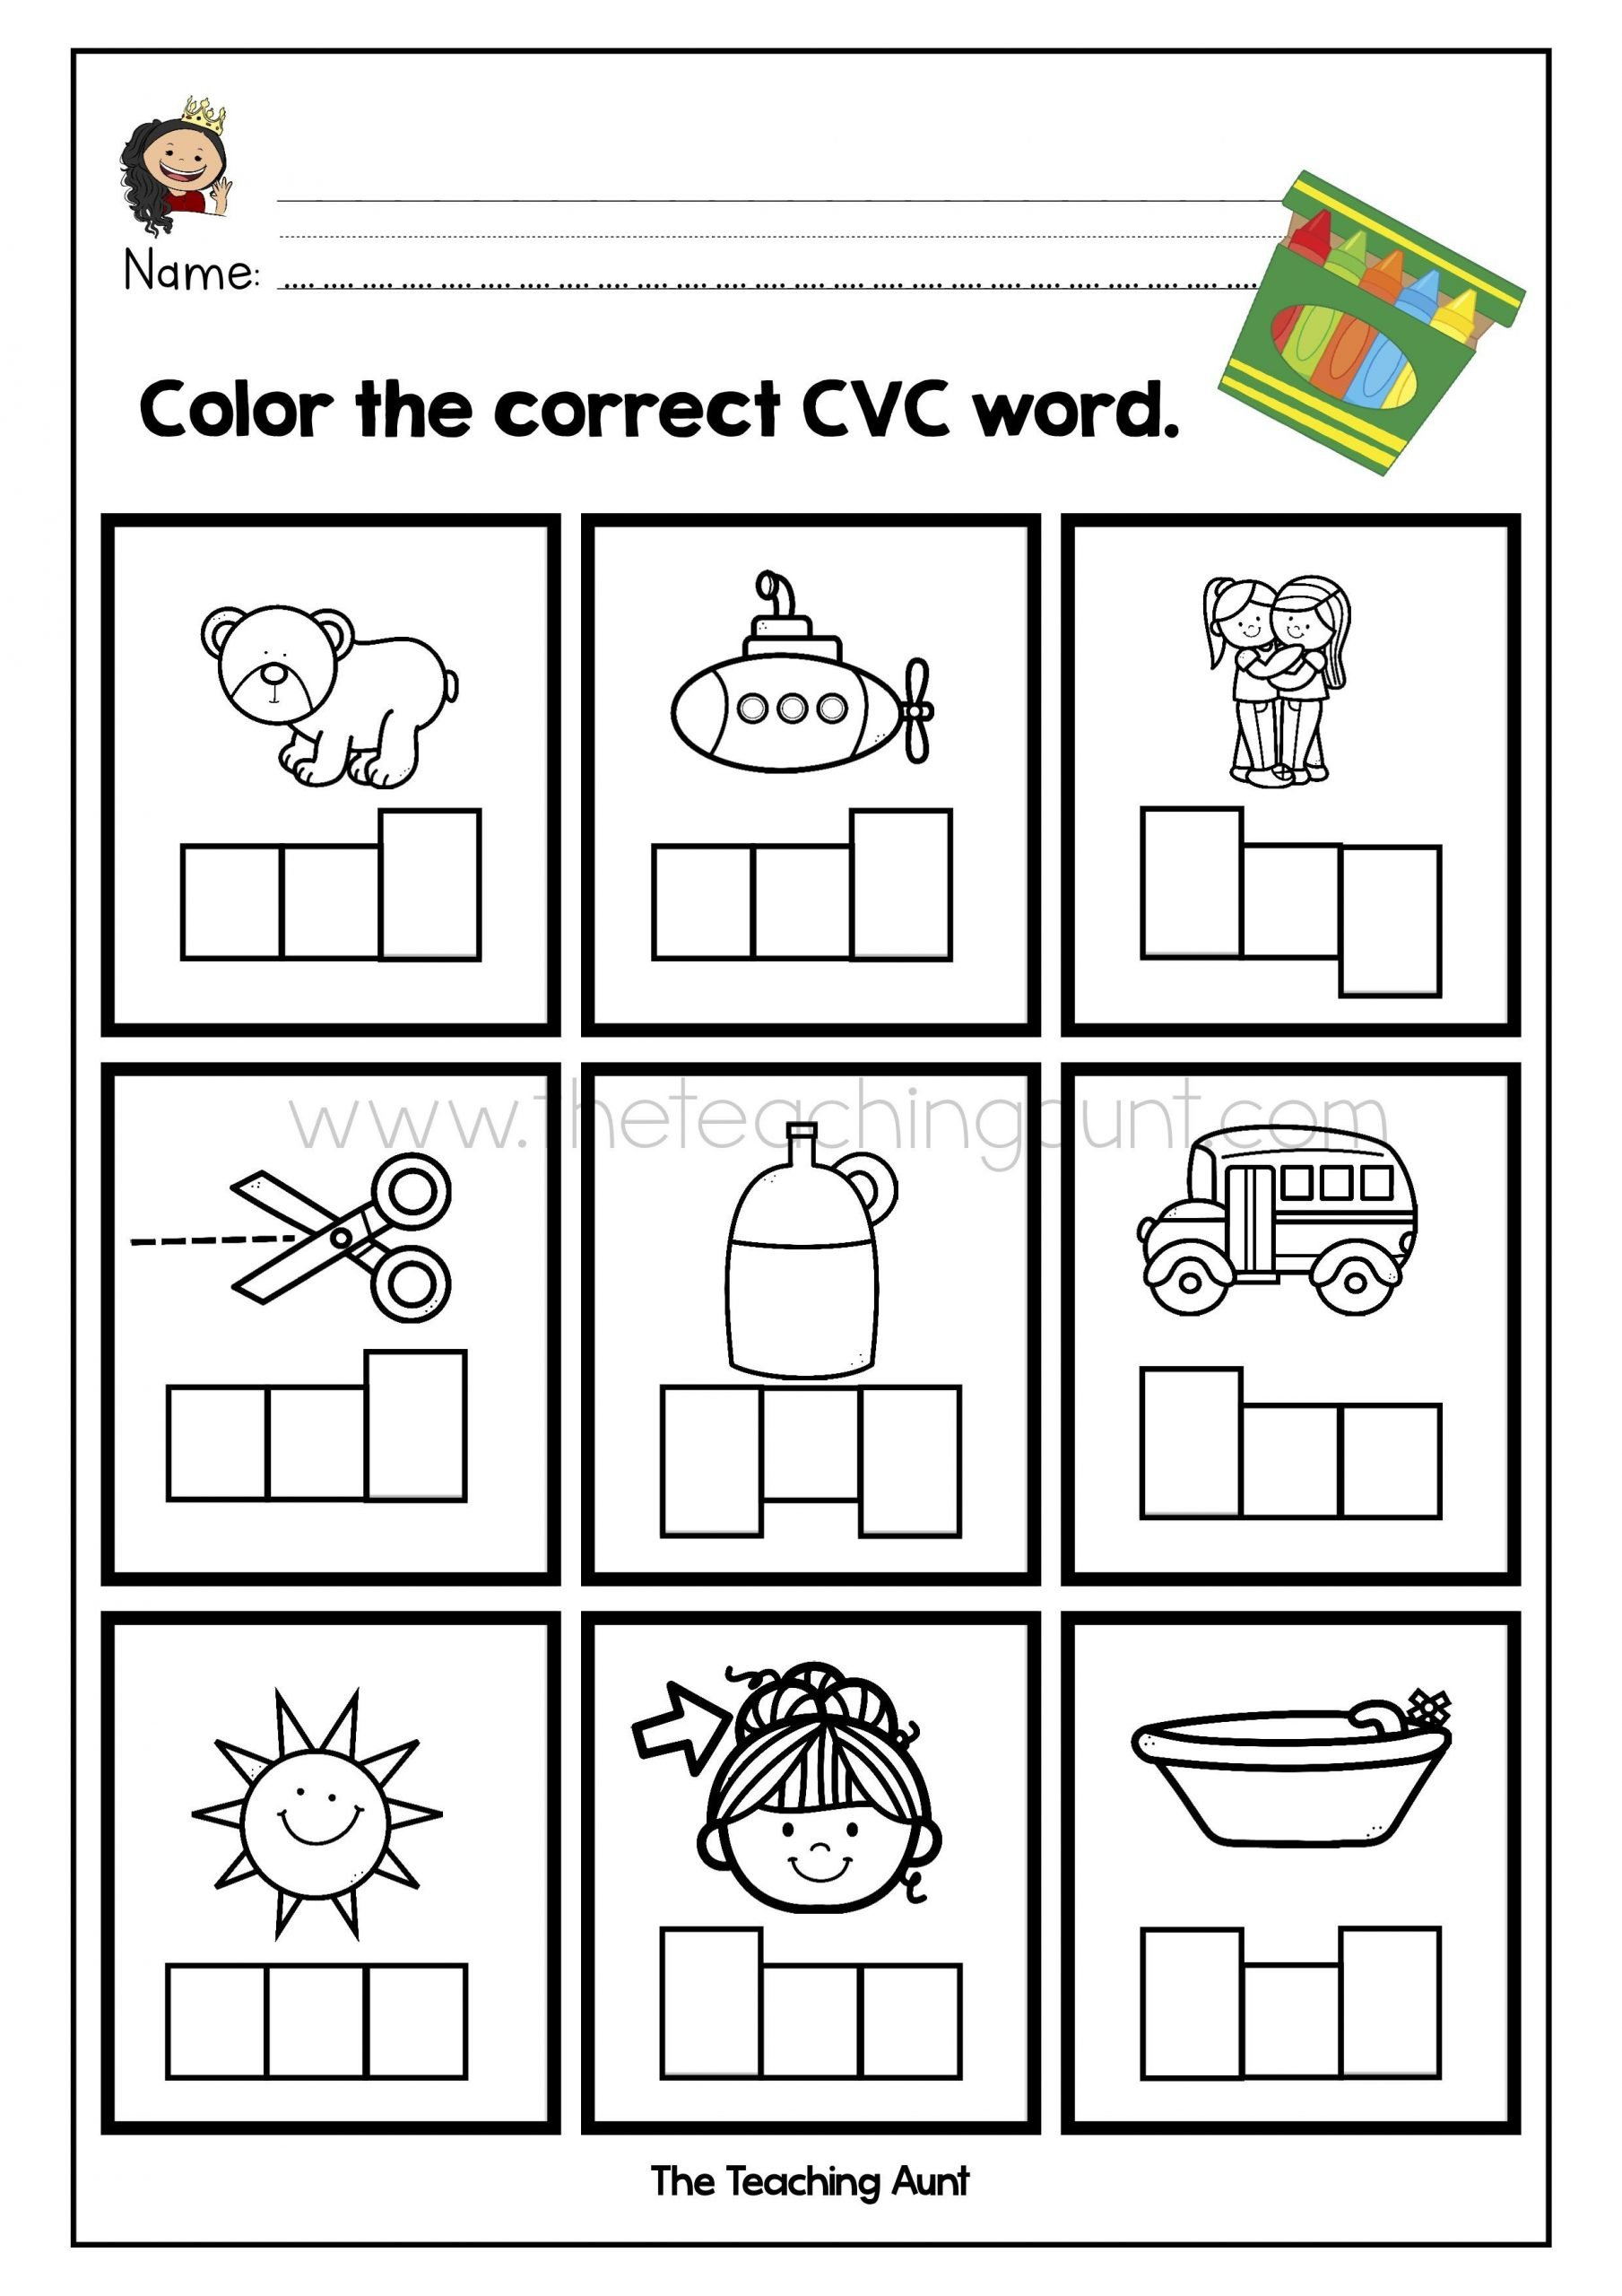 Cvc Words Worksheets Pdf Pin On Free Preschool Flashcards and Worksheets